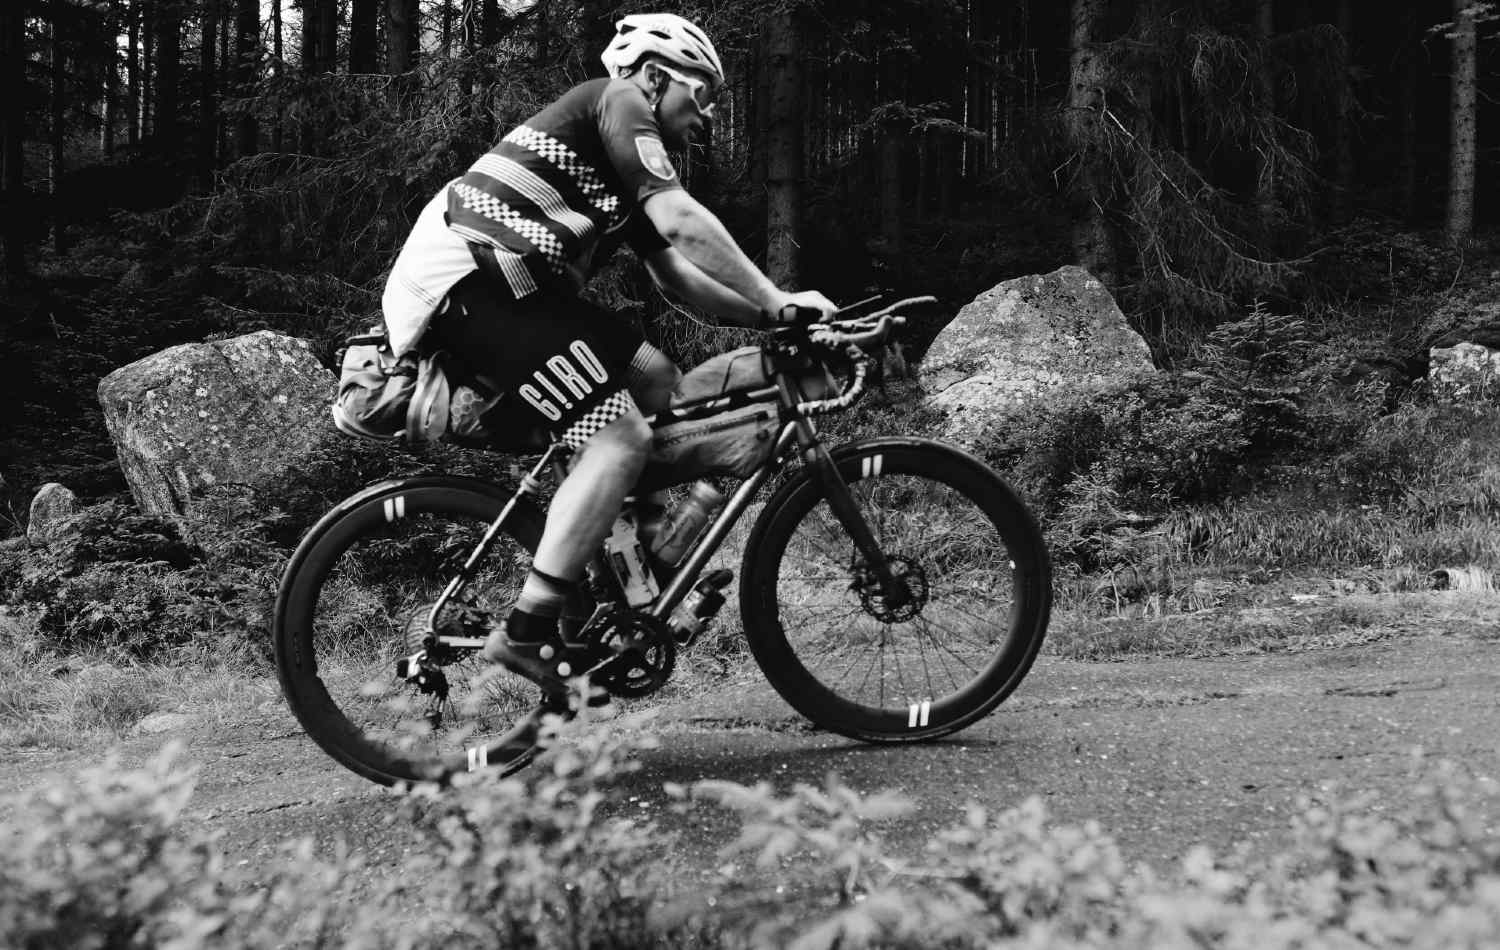 Matt Falconer in black and white Riding a bike in a dirt road with a full bikepacking equipment